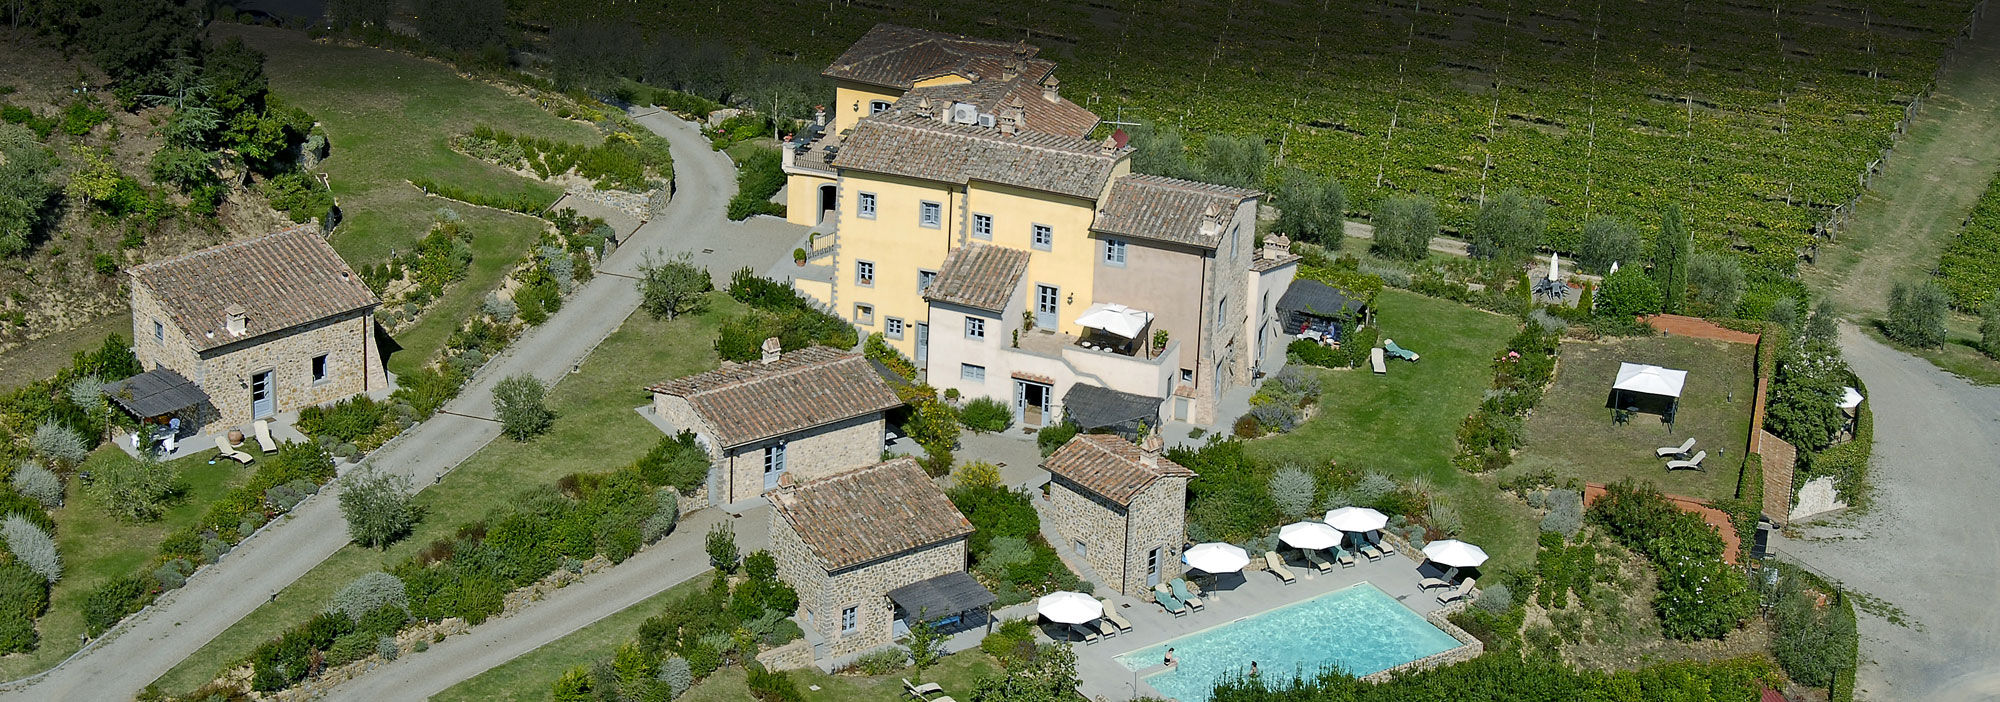 Guardastelle Apartments B&B Rooms in San Gimignano, Tuscany Wine Tasting